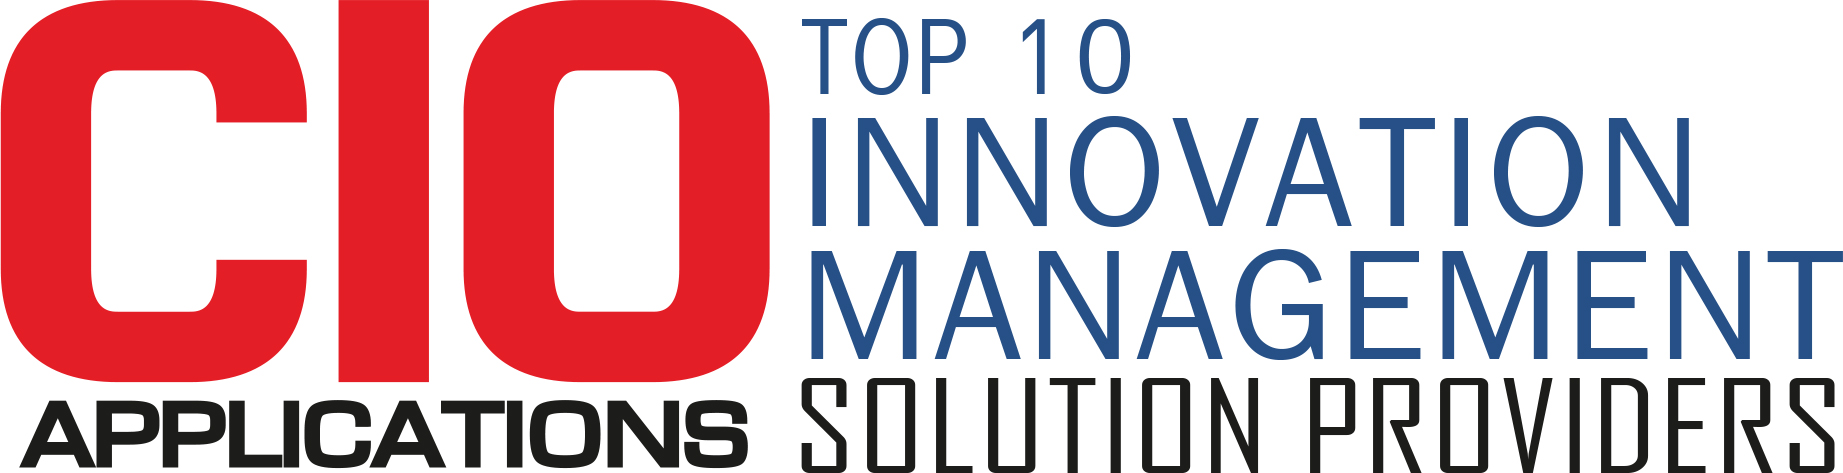 Top 10 Companies Providing Innovation Management Solution - 2018